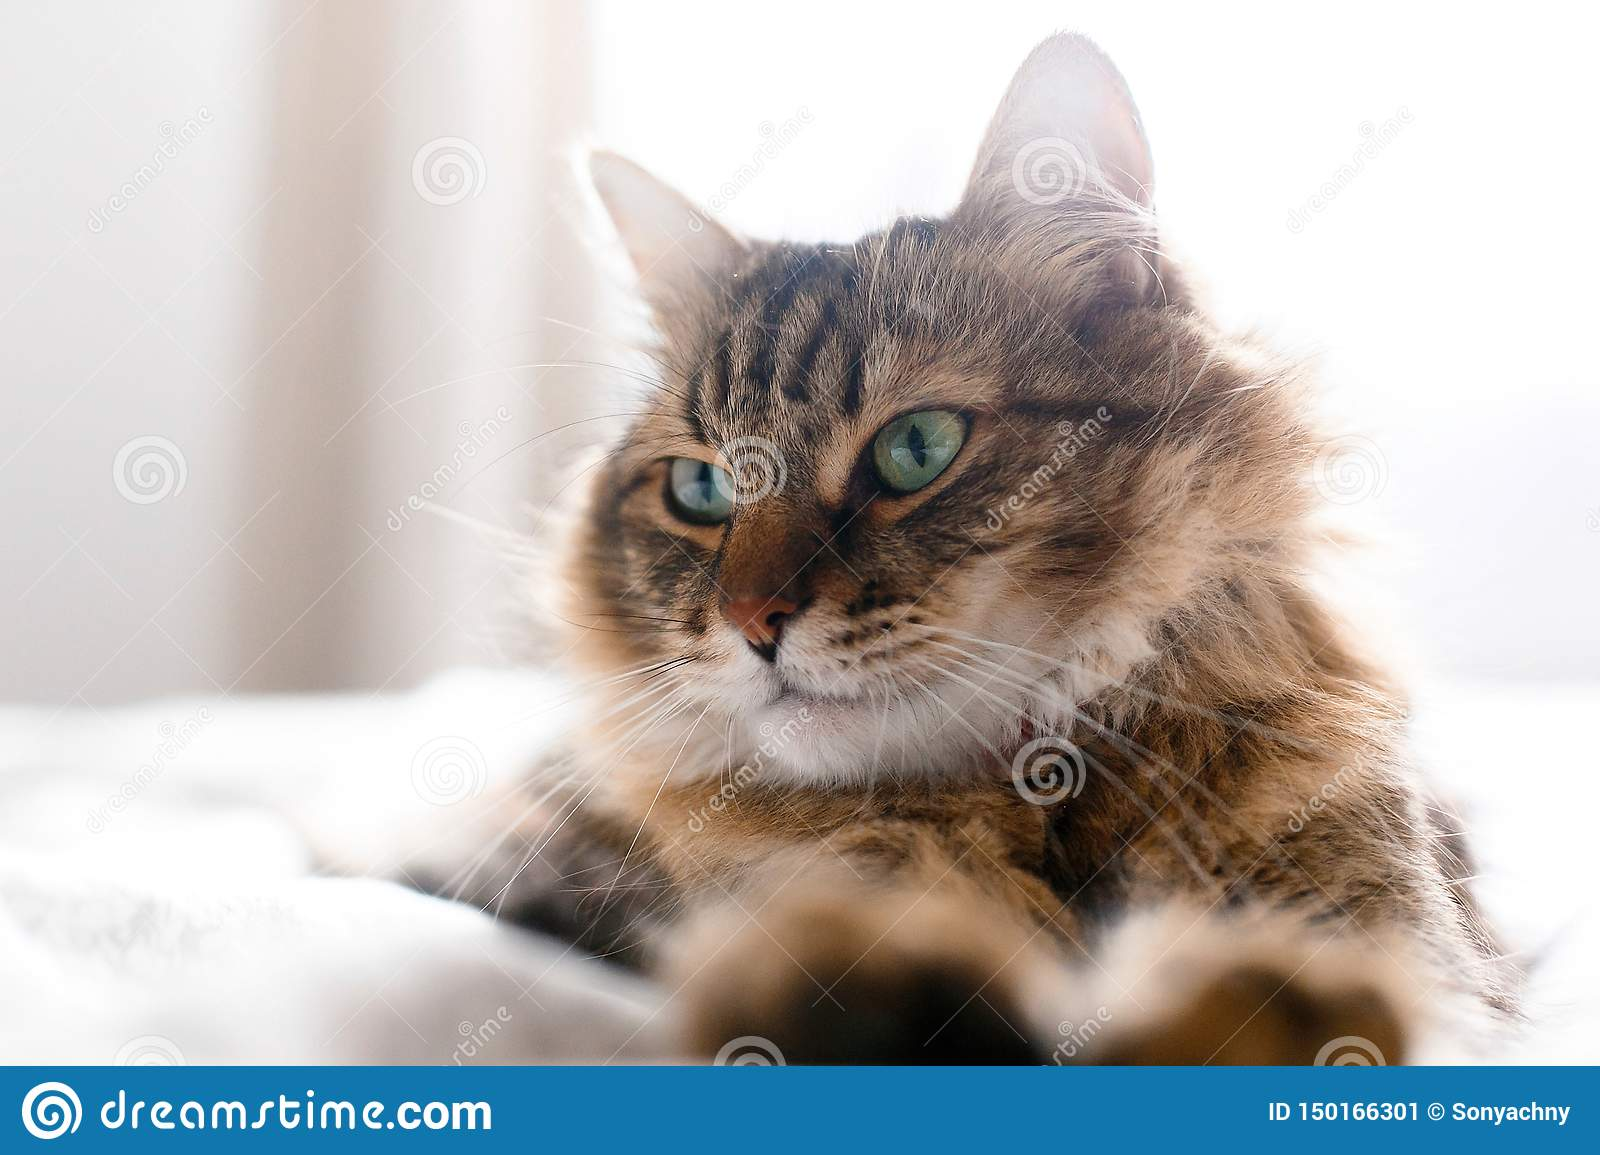 Cute cat relaxing on white bed in sunny bright stylish room. Maine coon with green eyes lying and looking with funny emotions on